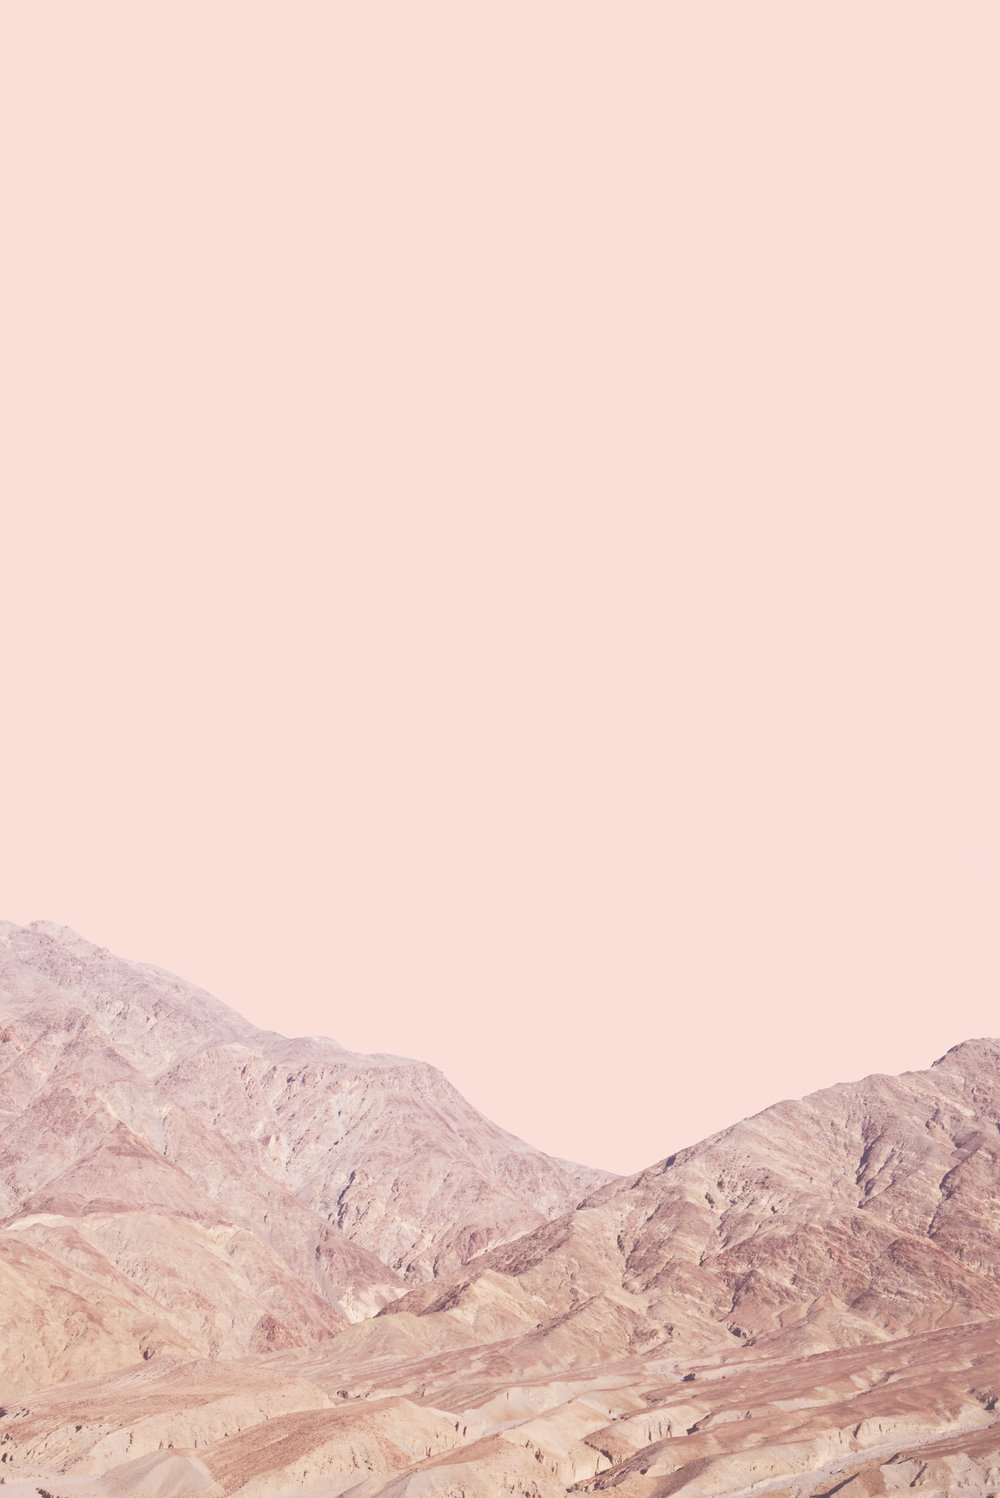 Jordan Sullivan, Death Valley Mountain 23, 2013-2016 Digital C-Print 60 x 40 in (152.4 x 101.6 cm) Edition 1 of 5